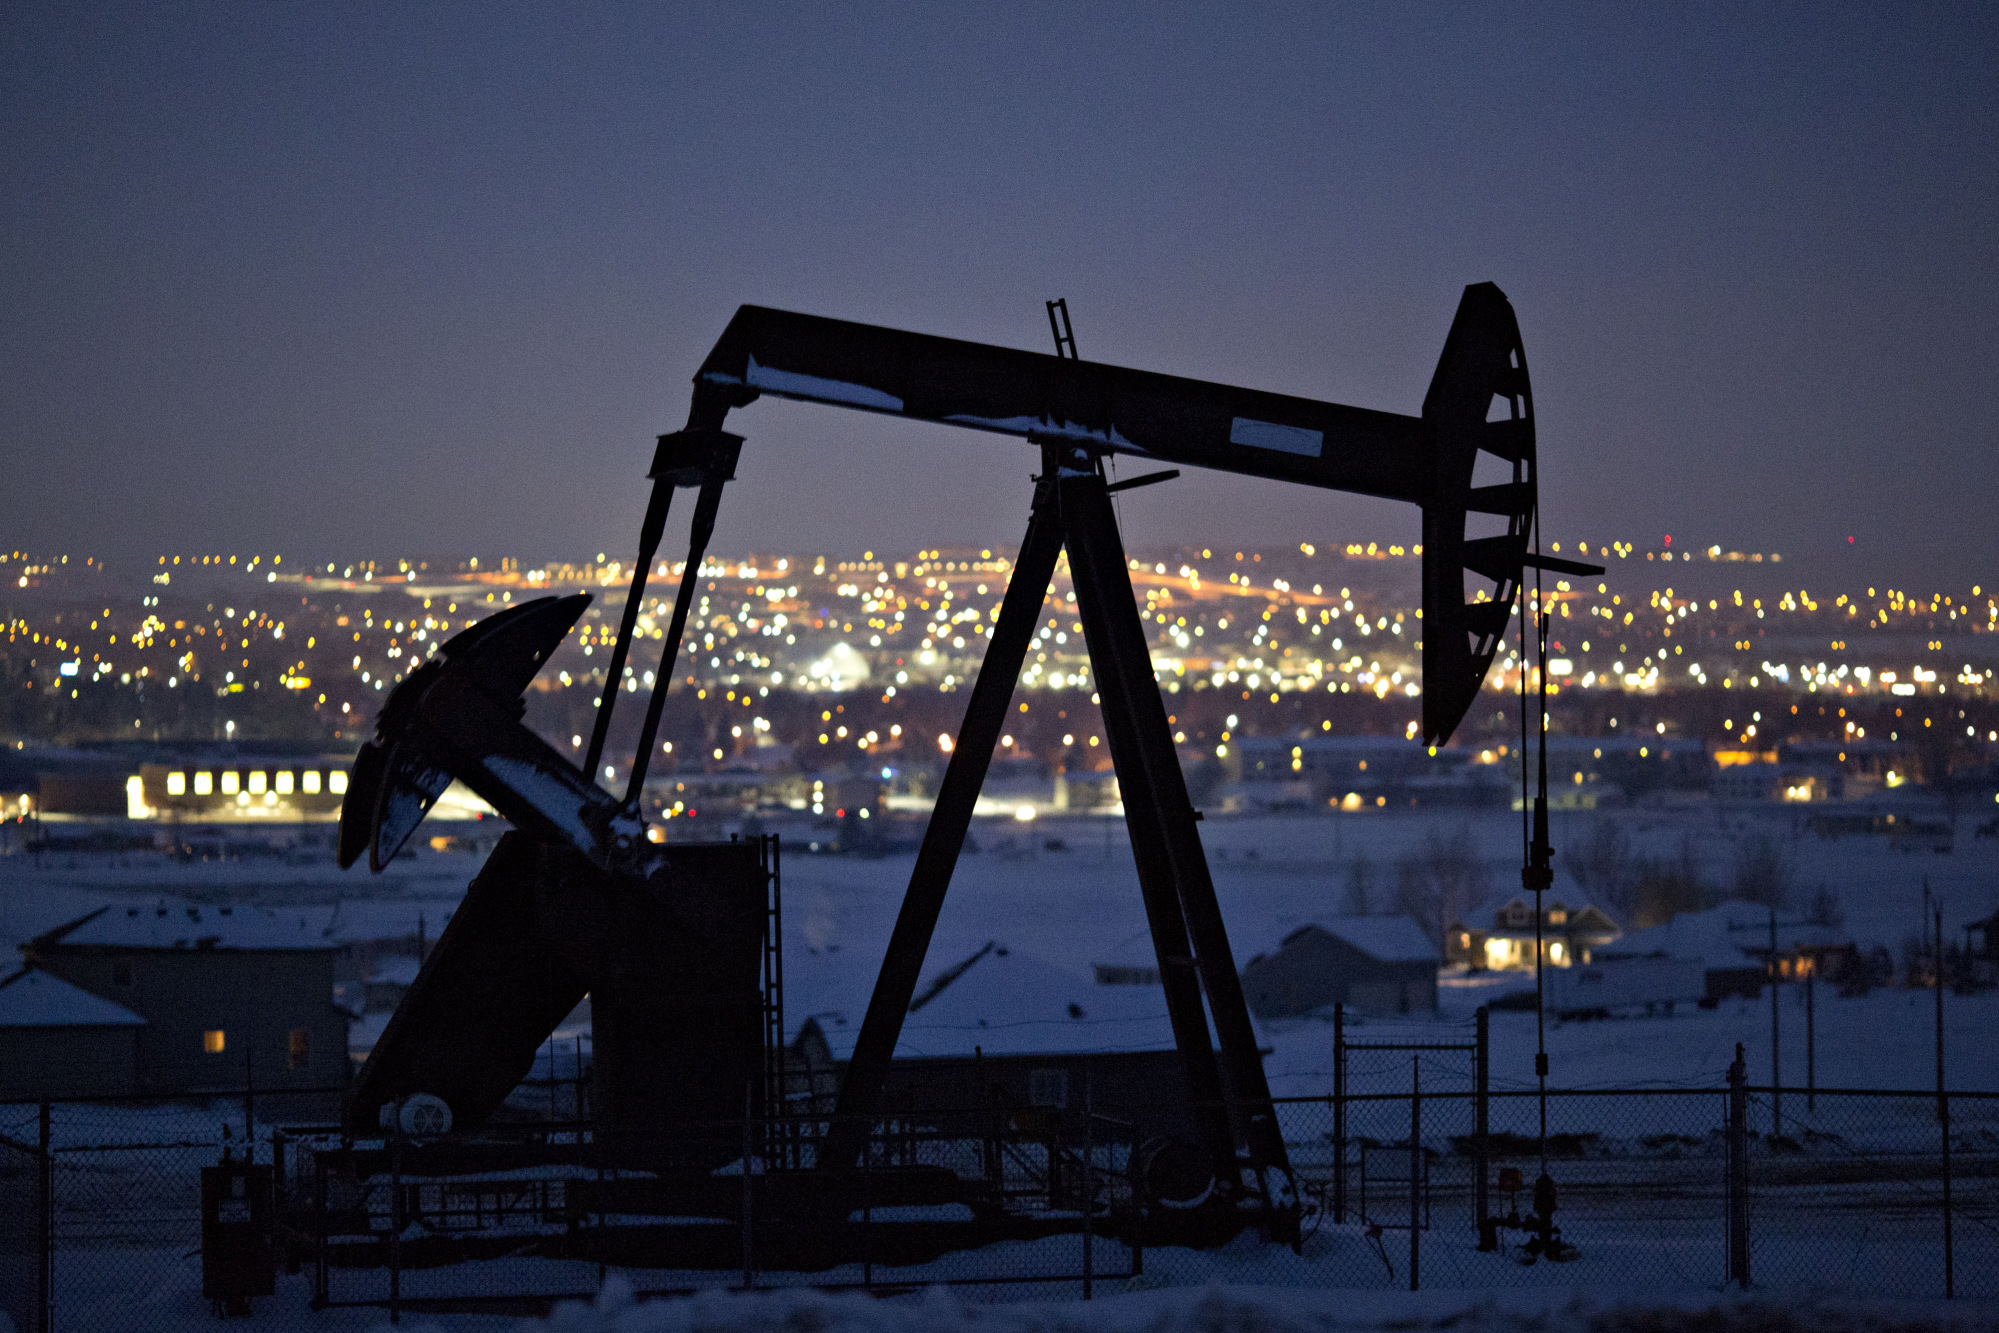 A pumpjack operates above an oil well at night in the Bakken Formation on the outskirts of Williston, North Dakota, U.S., on Thursday, March 8, 2018.